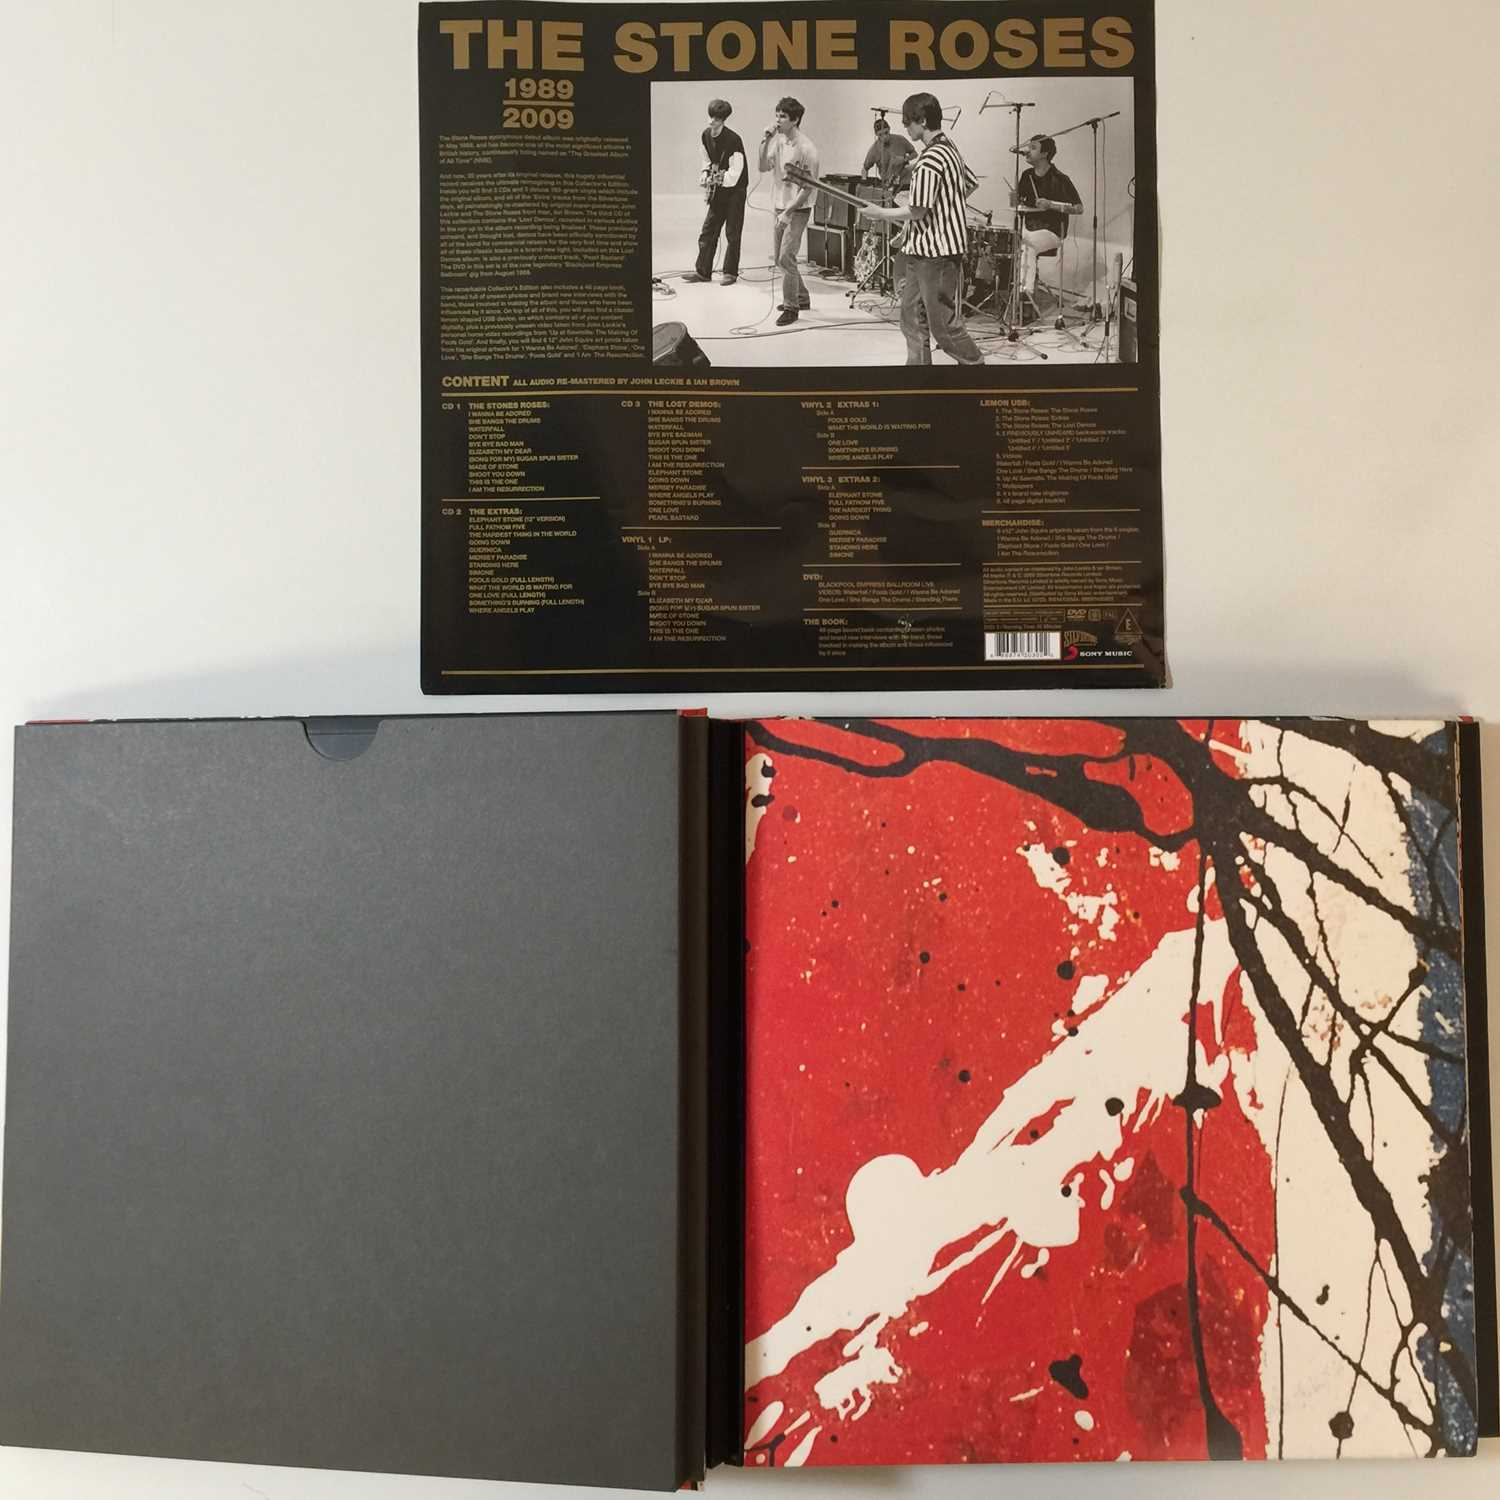 THE STONE ROSES - THE STONE ROSES (2009 LIMITED EDITION LP/CD/DVD BOX SET - SILVERTONE 88697430302) - Image 3 of 4